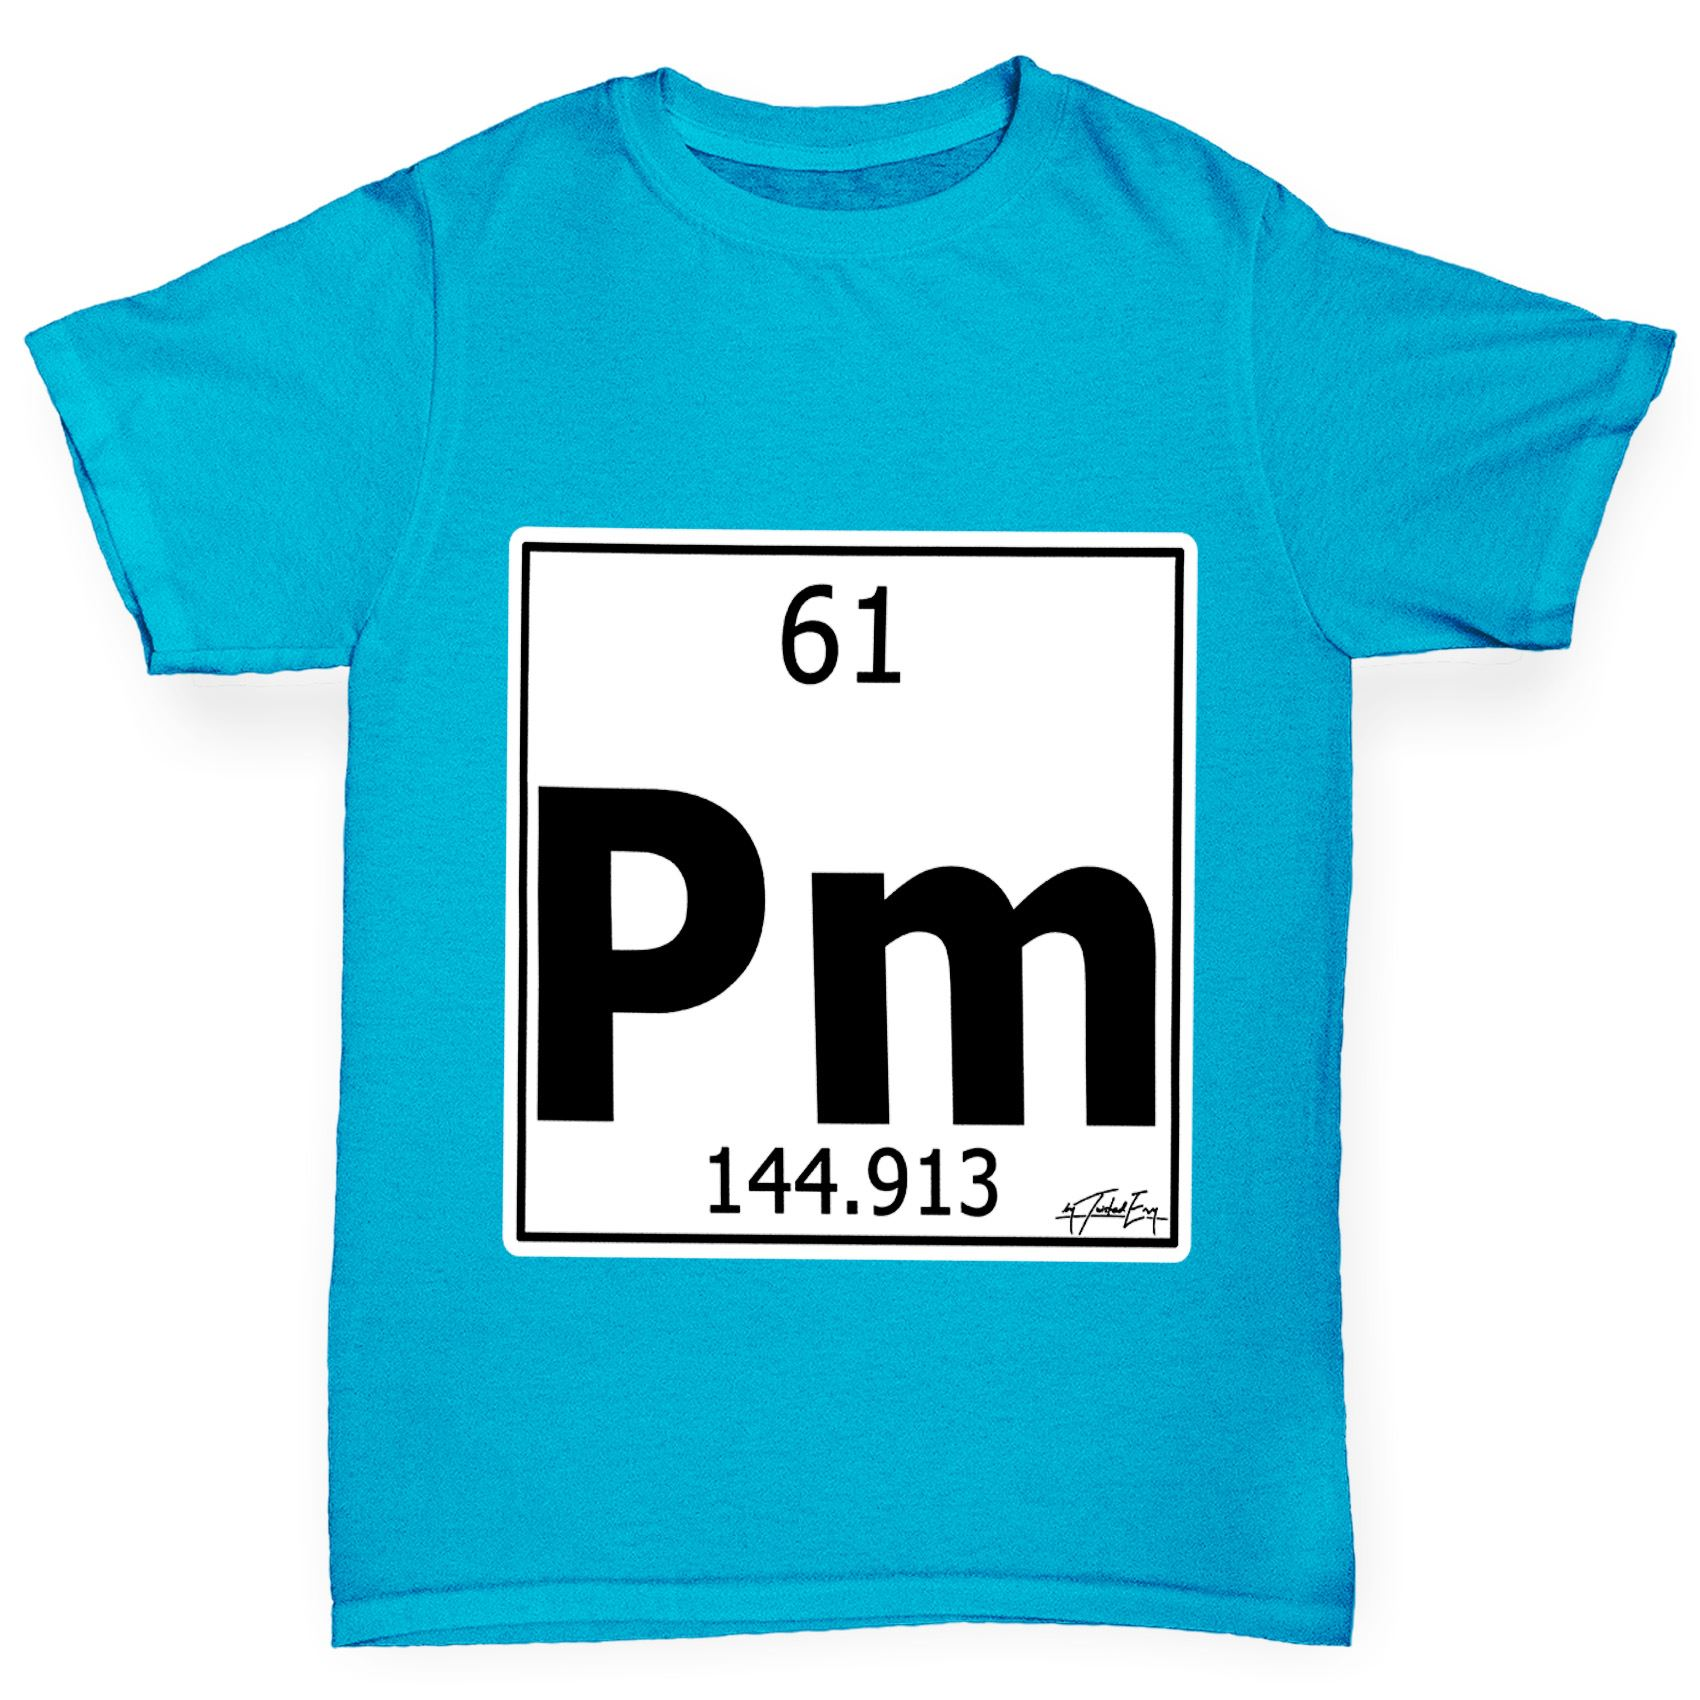 Twisted envy boys periodic table element pm promethium t shirt ebay twisted envy boy 039 s periodic table element gamestrikefo Images